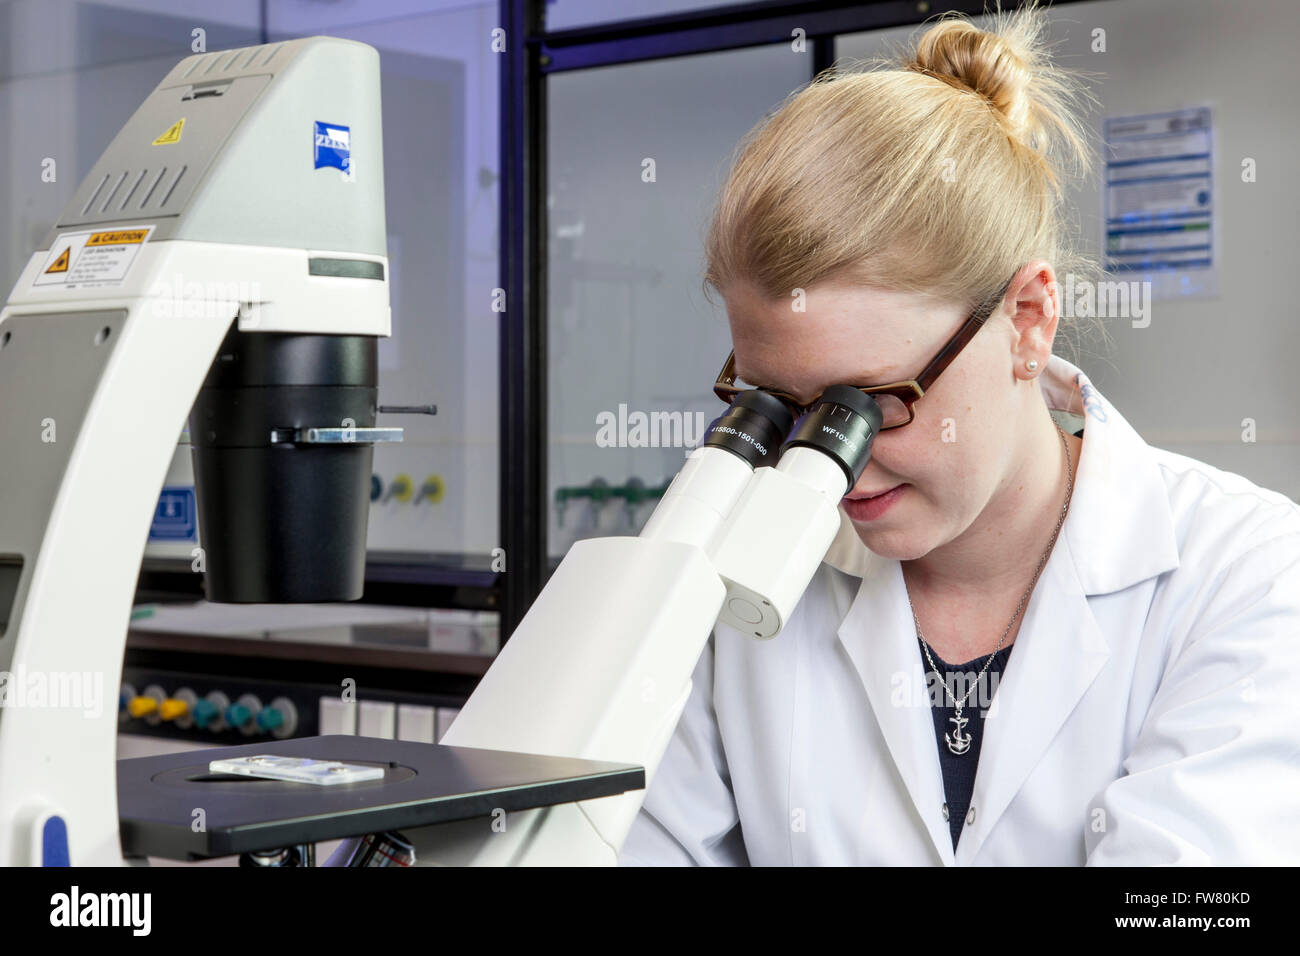 Scientist at a microscope. - Stock Image